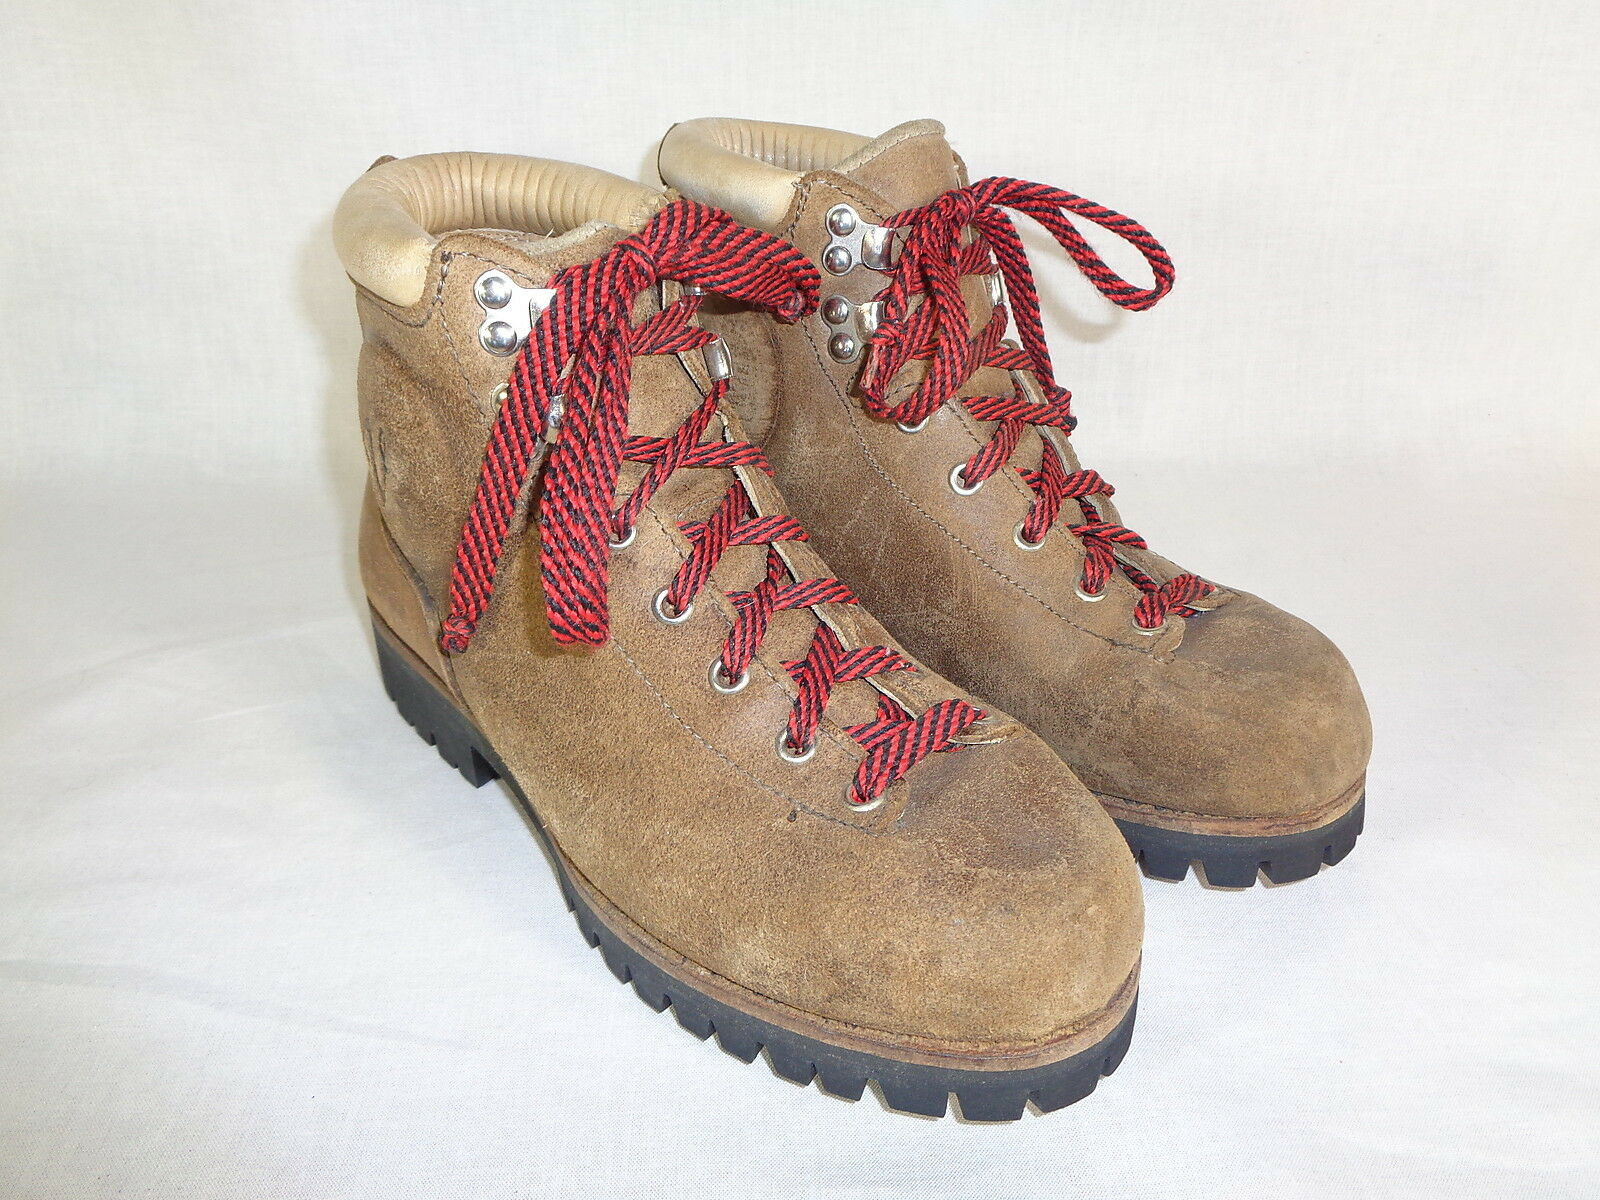 Vasque Women's Boots Hiking Leather Lug Sole  Mountaineering 70's Vintage 6